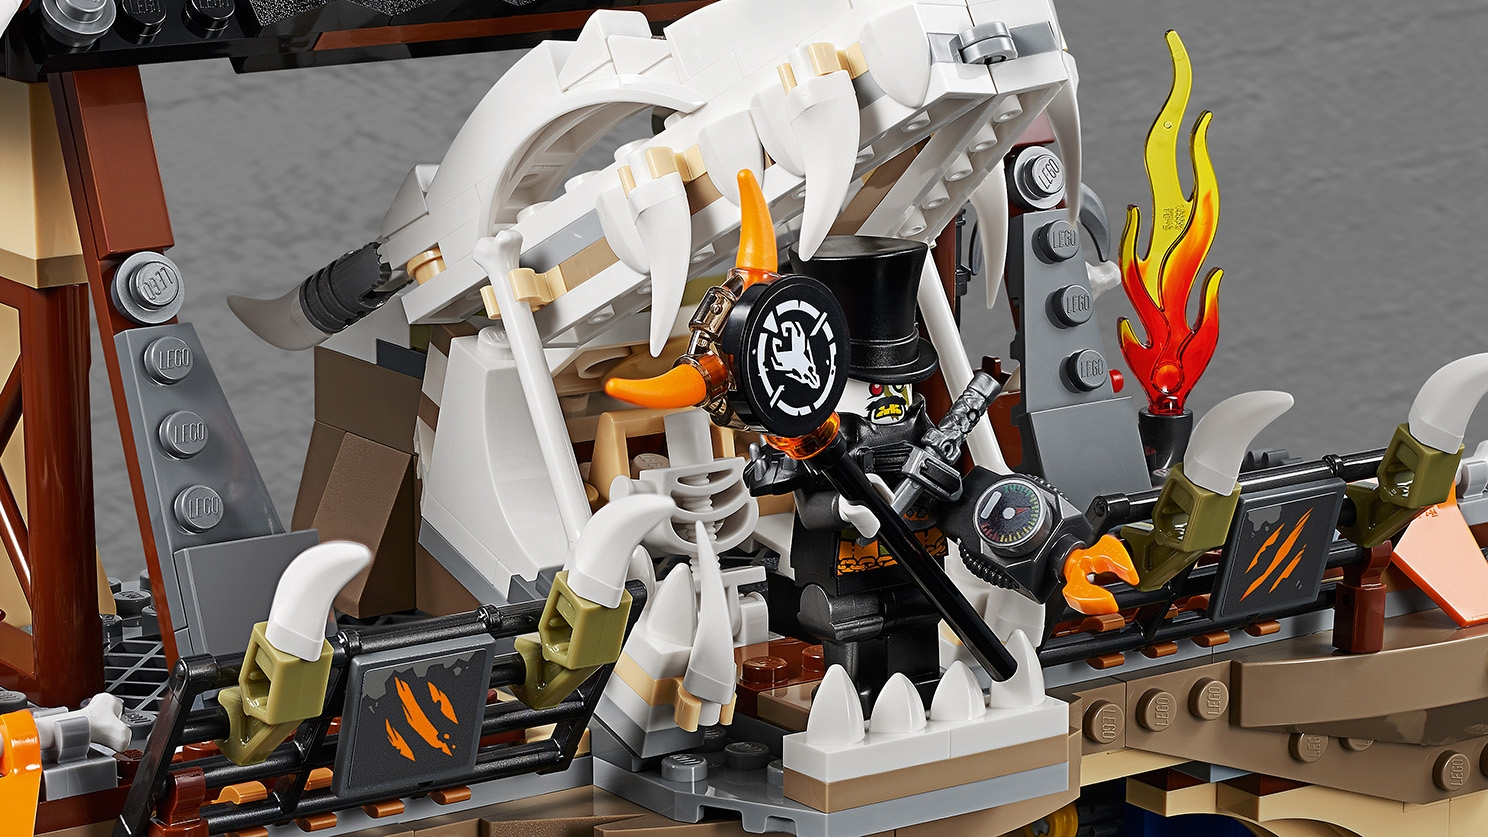 Lego Ninjago Dragon Armor / Shop with afterpay on eligible items.